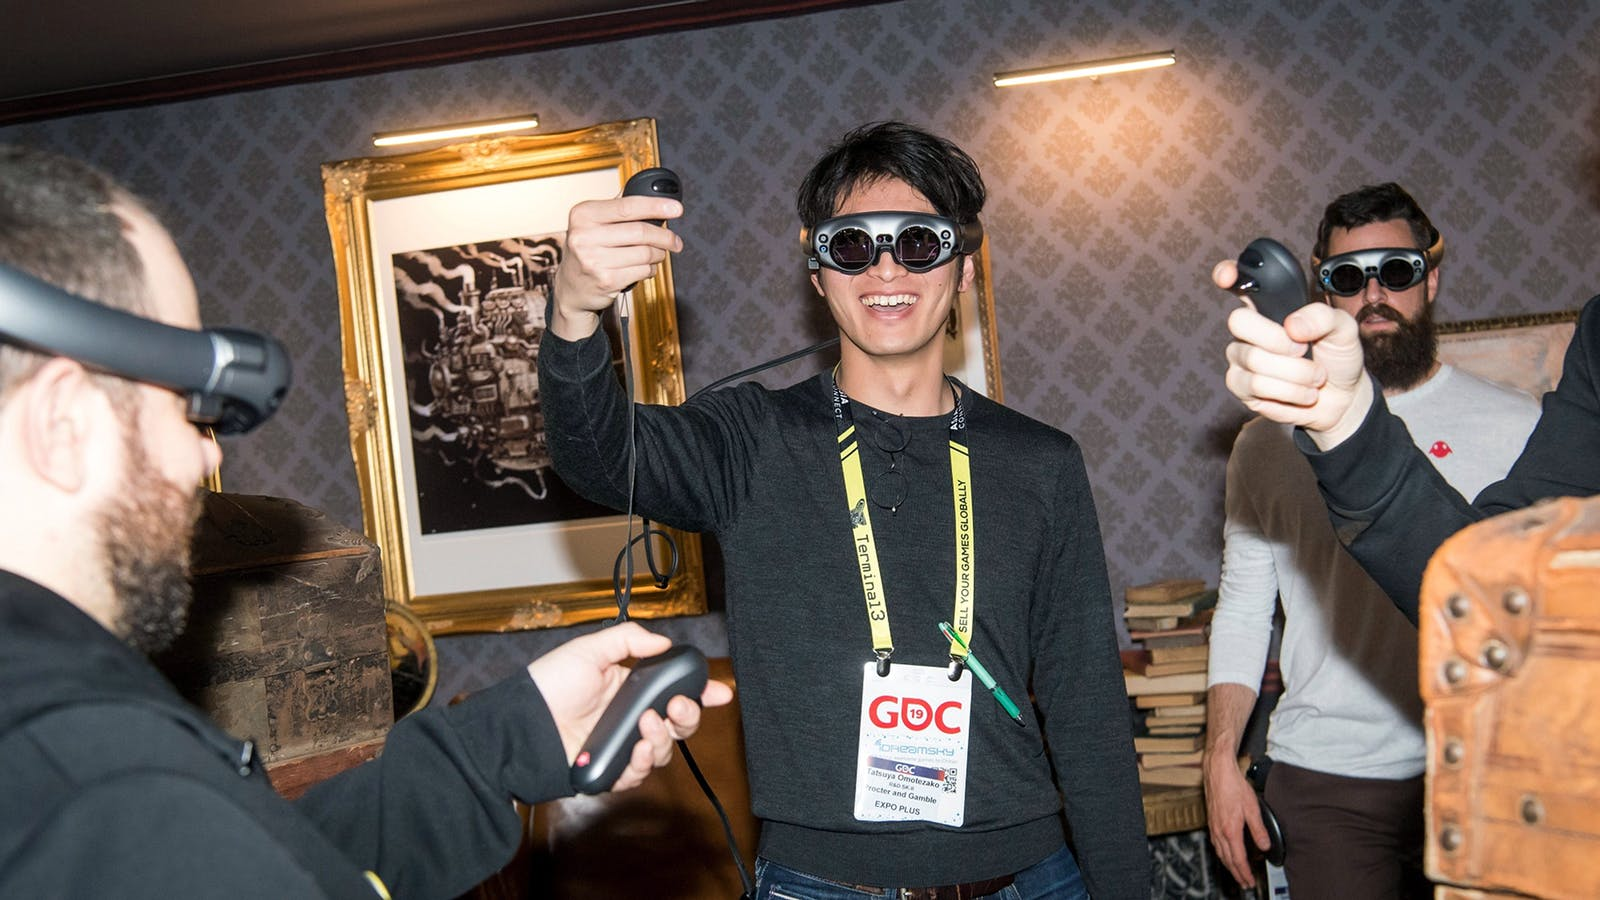 People wearing Magic Leap's first headset at a conference in 2019. Photo by Bloomberg